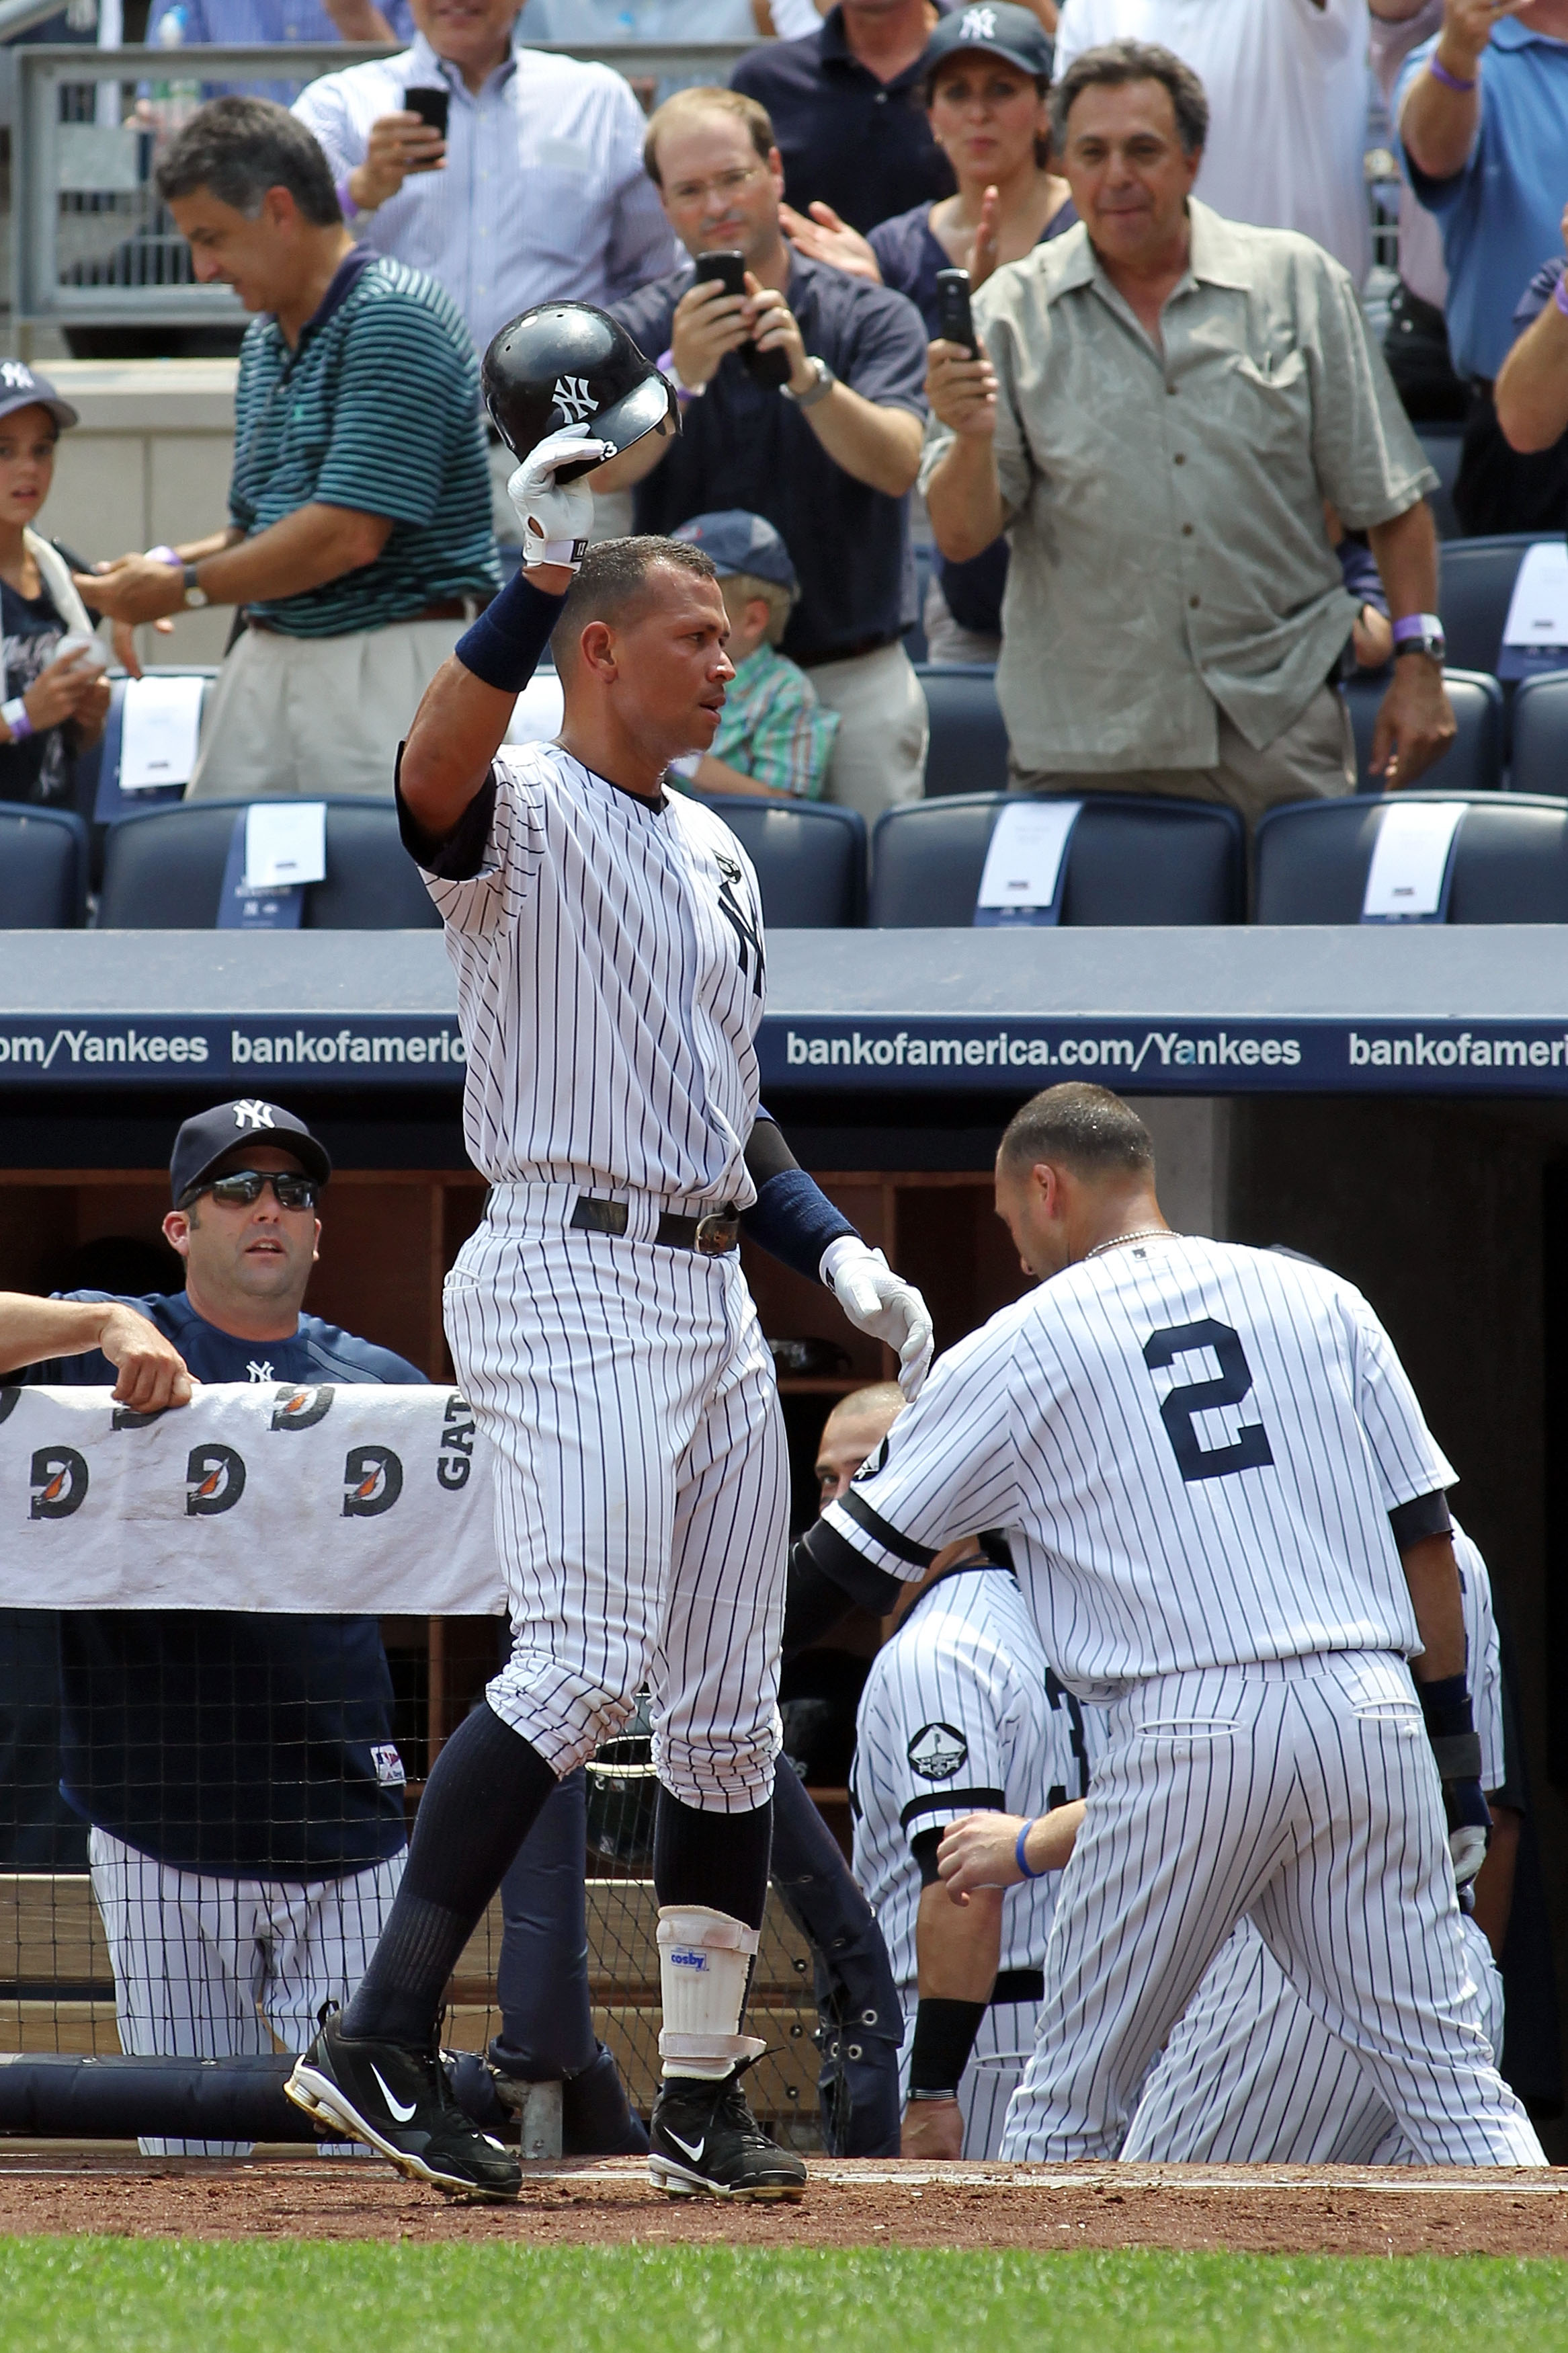 NEW YORK - AUGUST 04:  Alex Rodriguez #13 of the New York Yankees takes a curtain call after hitting the 600th home run of his career in the first inning against the Toronto Blue Jays on August 4, 2010 at Yankee Stadium in the Bronx borough of New York Ci